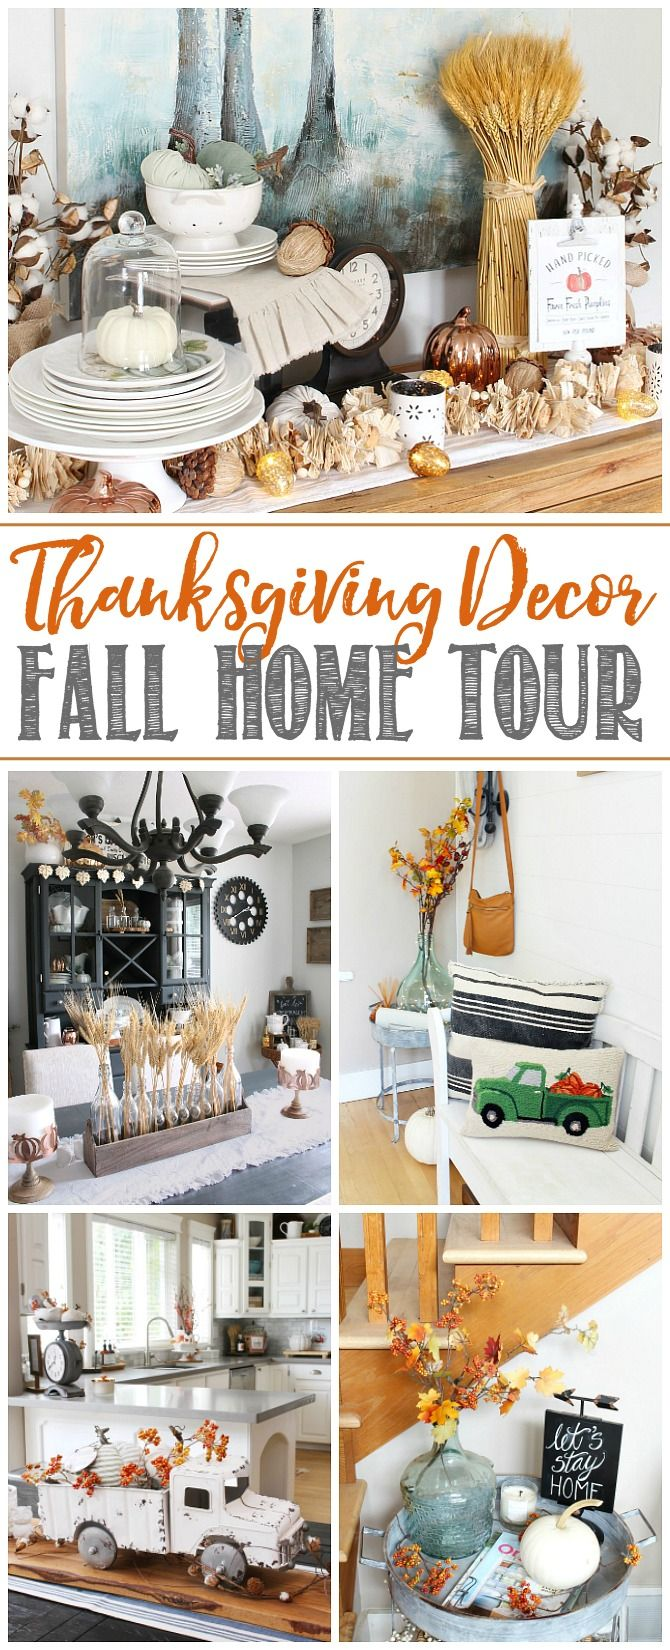 Full Fall Home Tour With Lots Of Simple Ideas To Decorate Your Home For Fall And